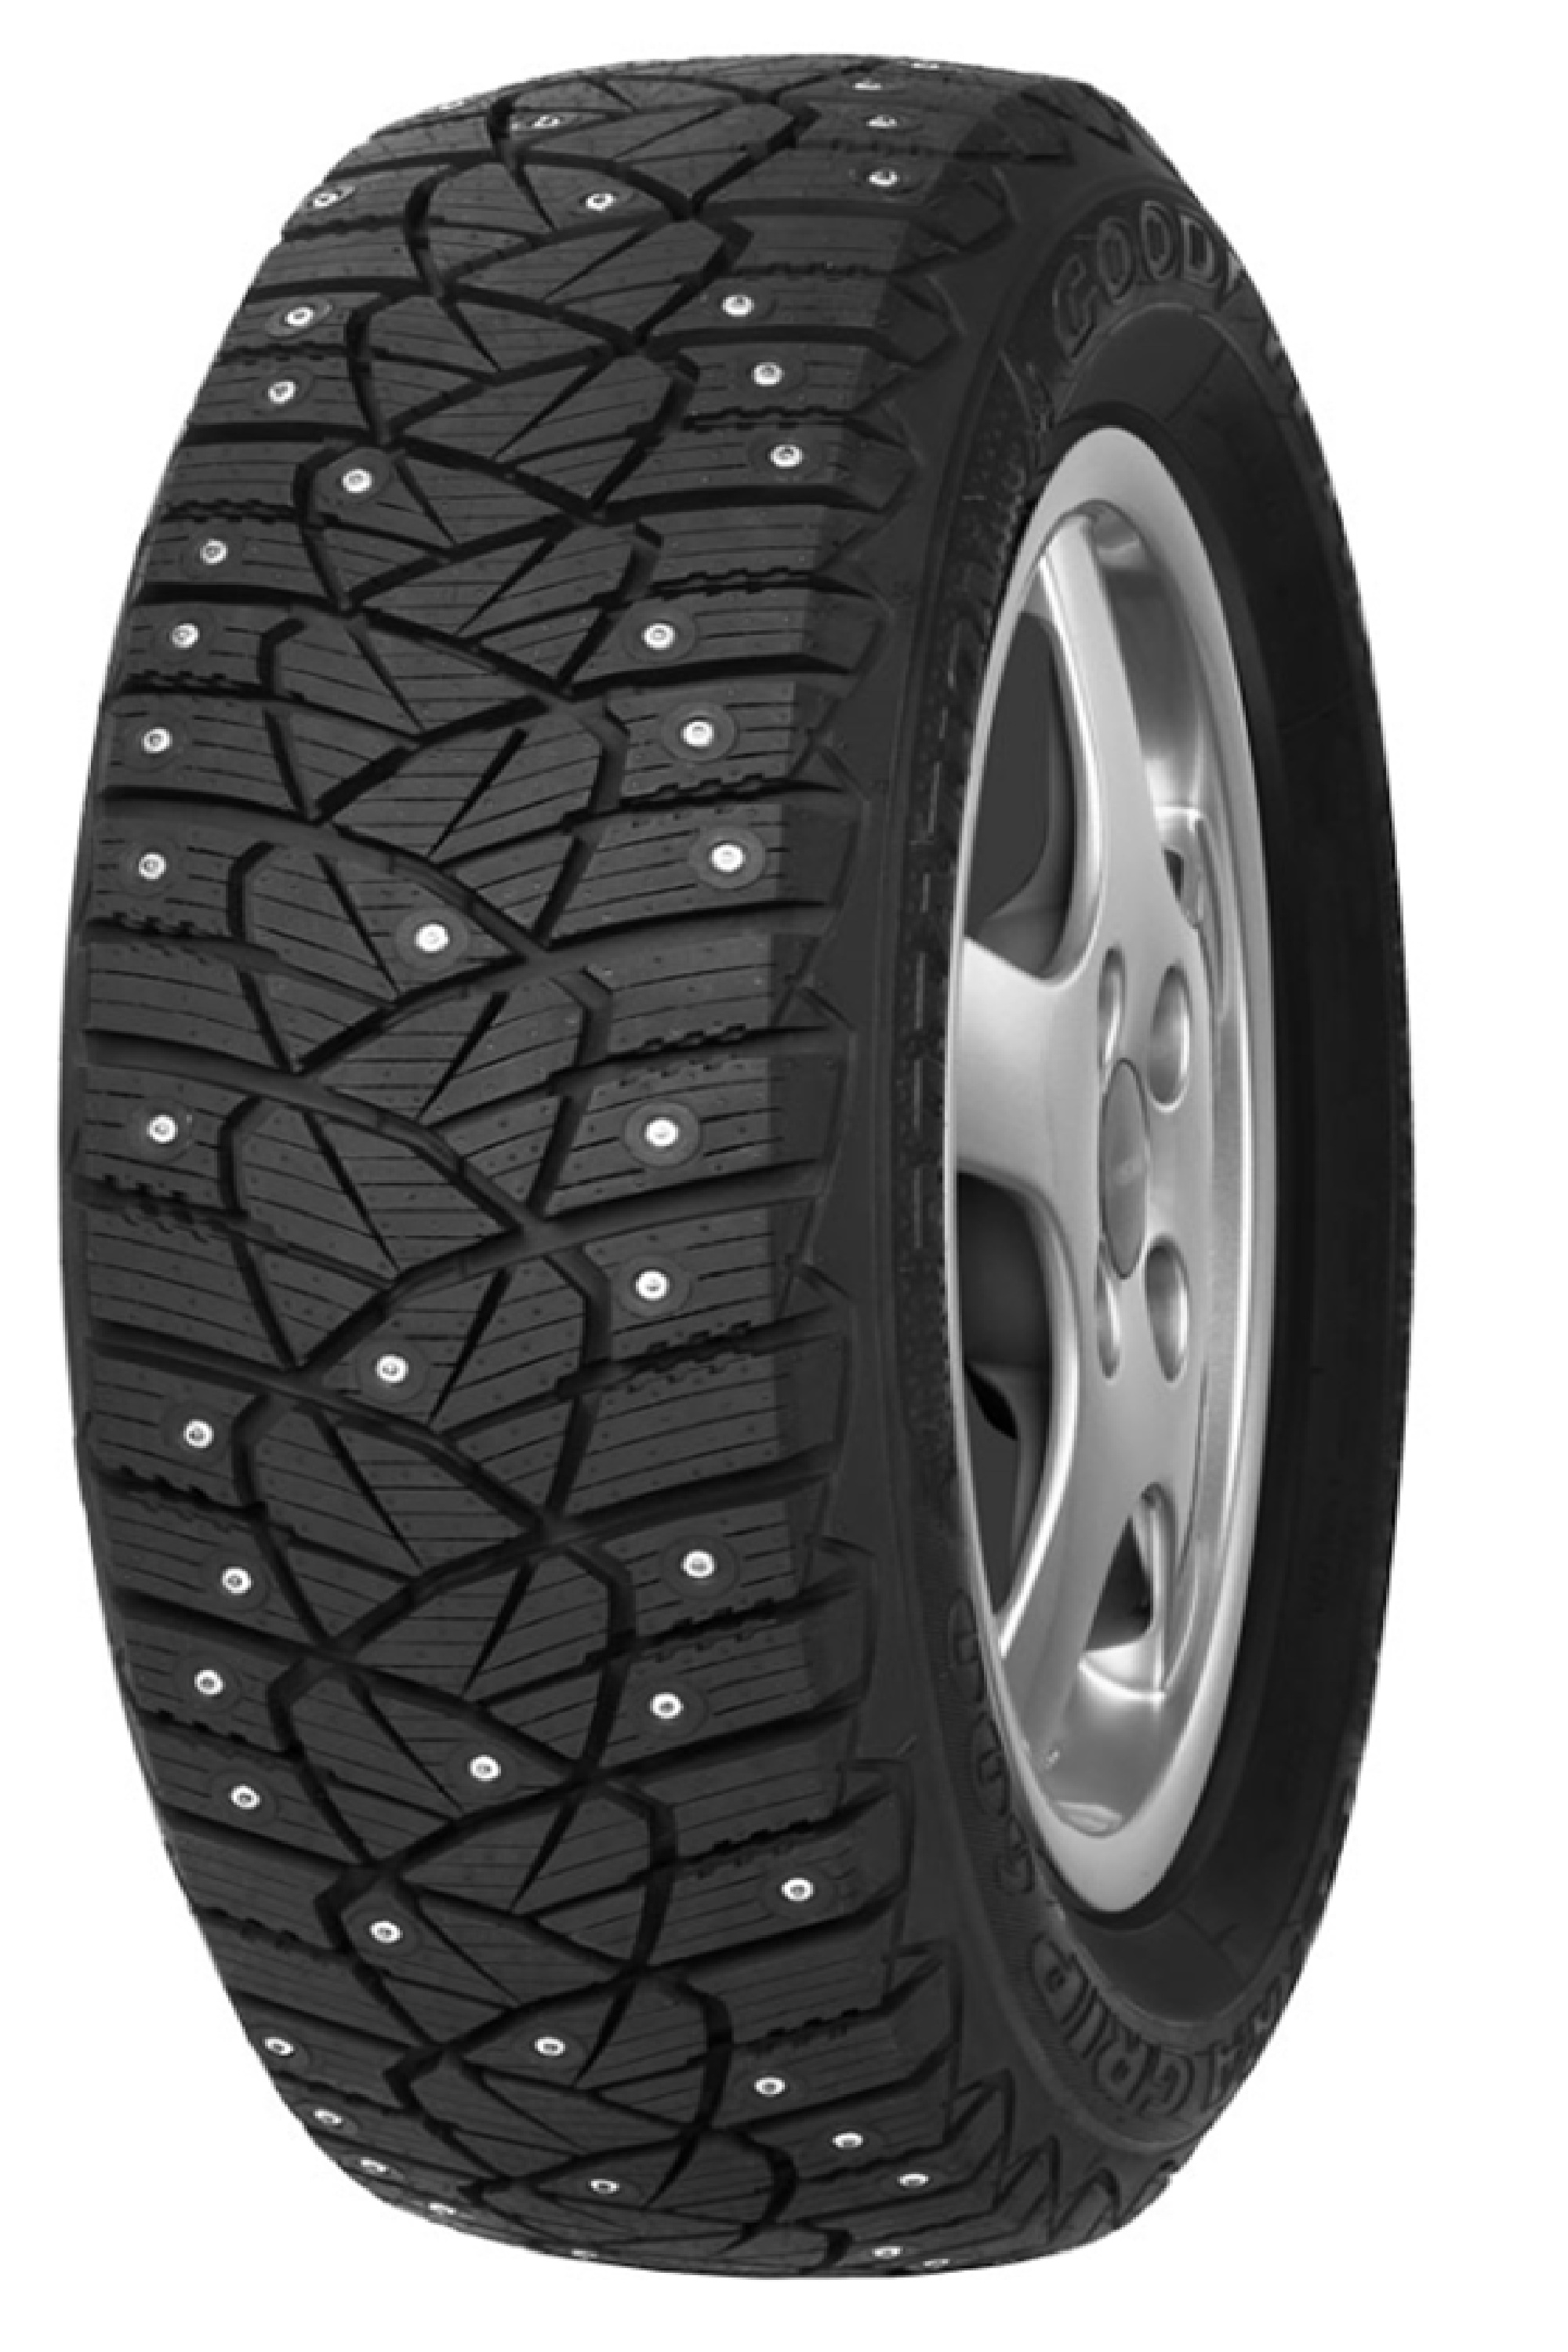 175/65 R14 Goodyear Ultra Grip 600 MS D-Stud 86T XL